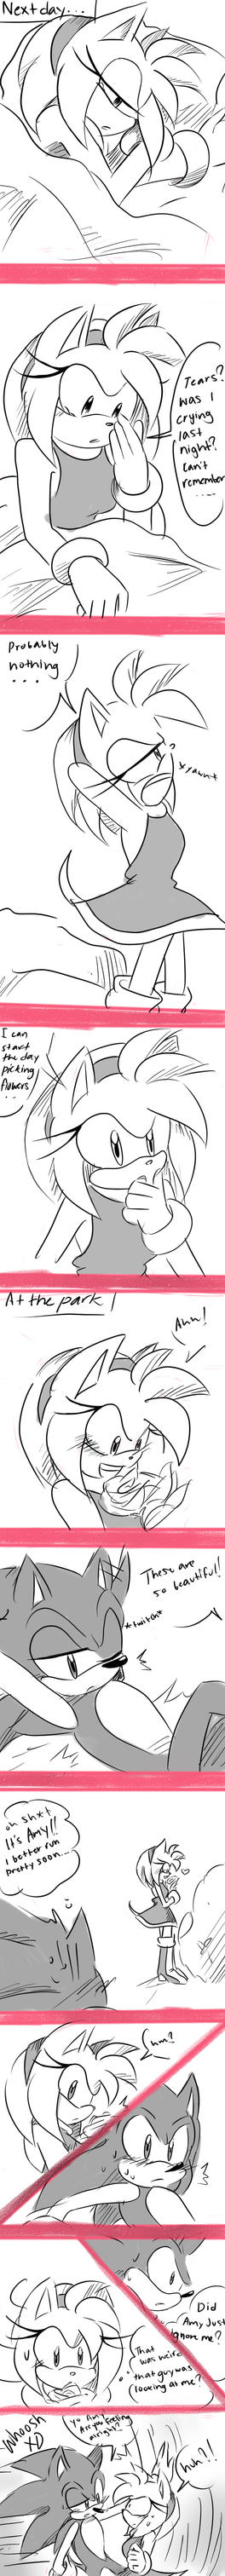 Forgotten Page 5 by RulErofsonic